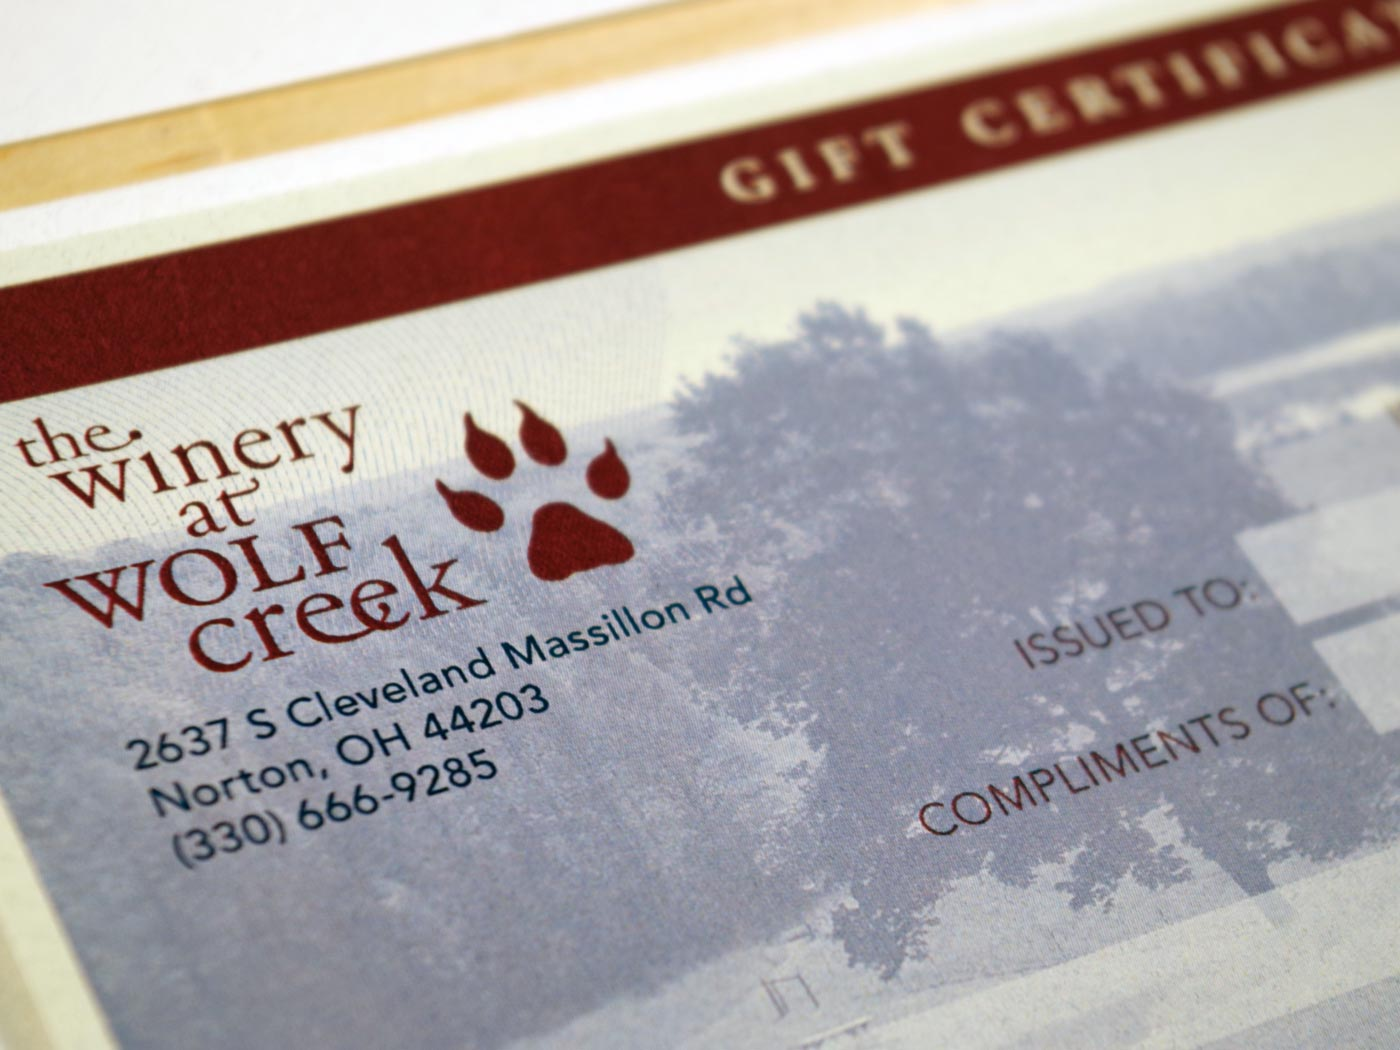 The Winery at Wolf Creek gift certificate